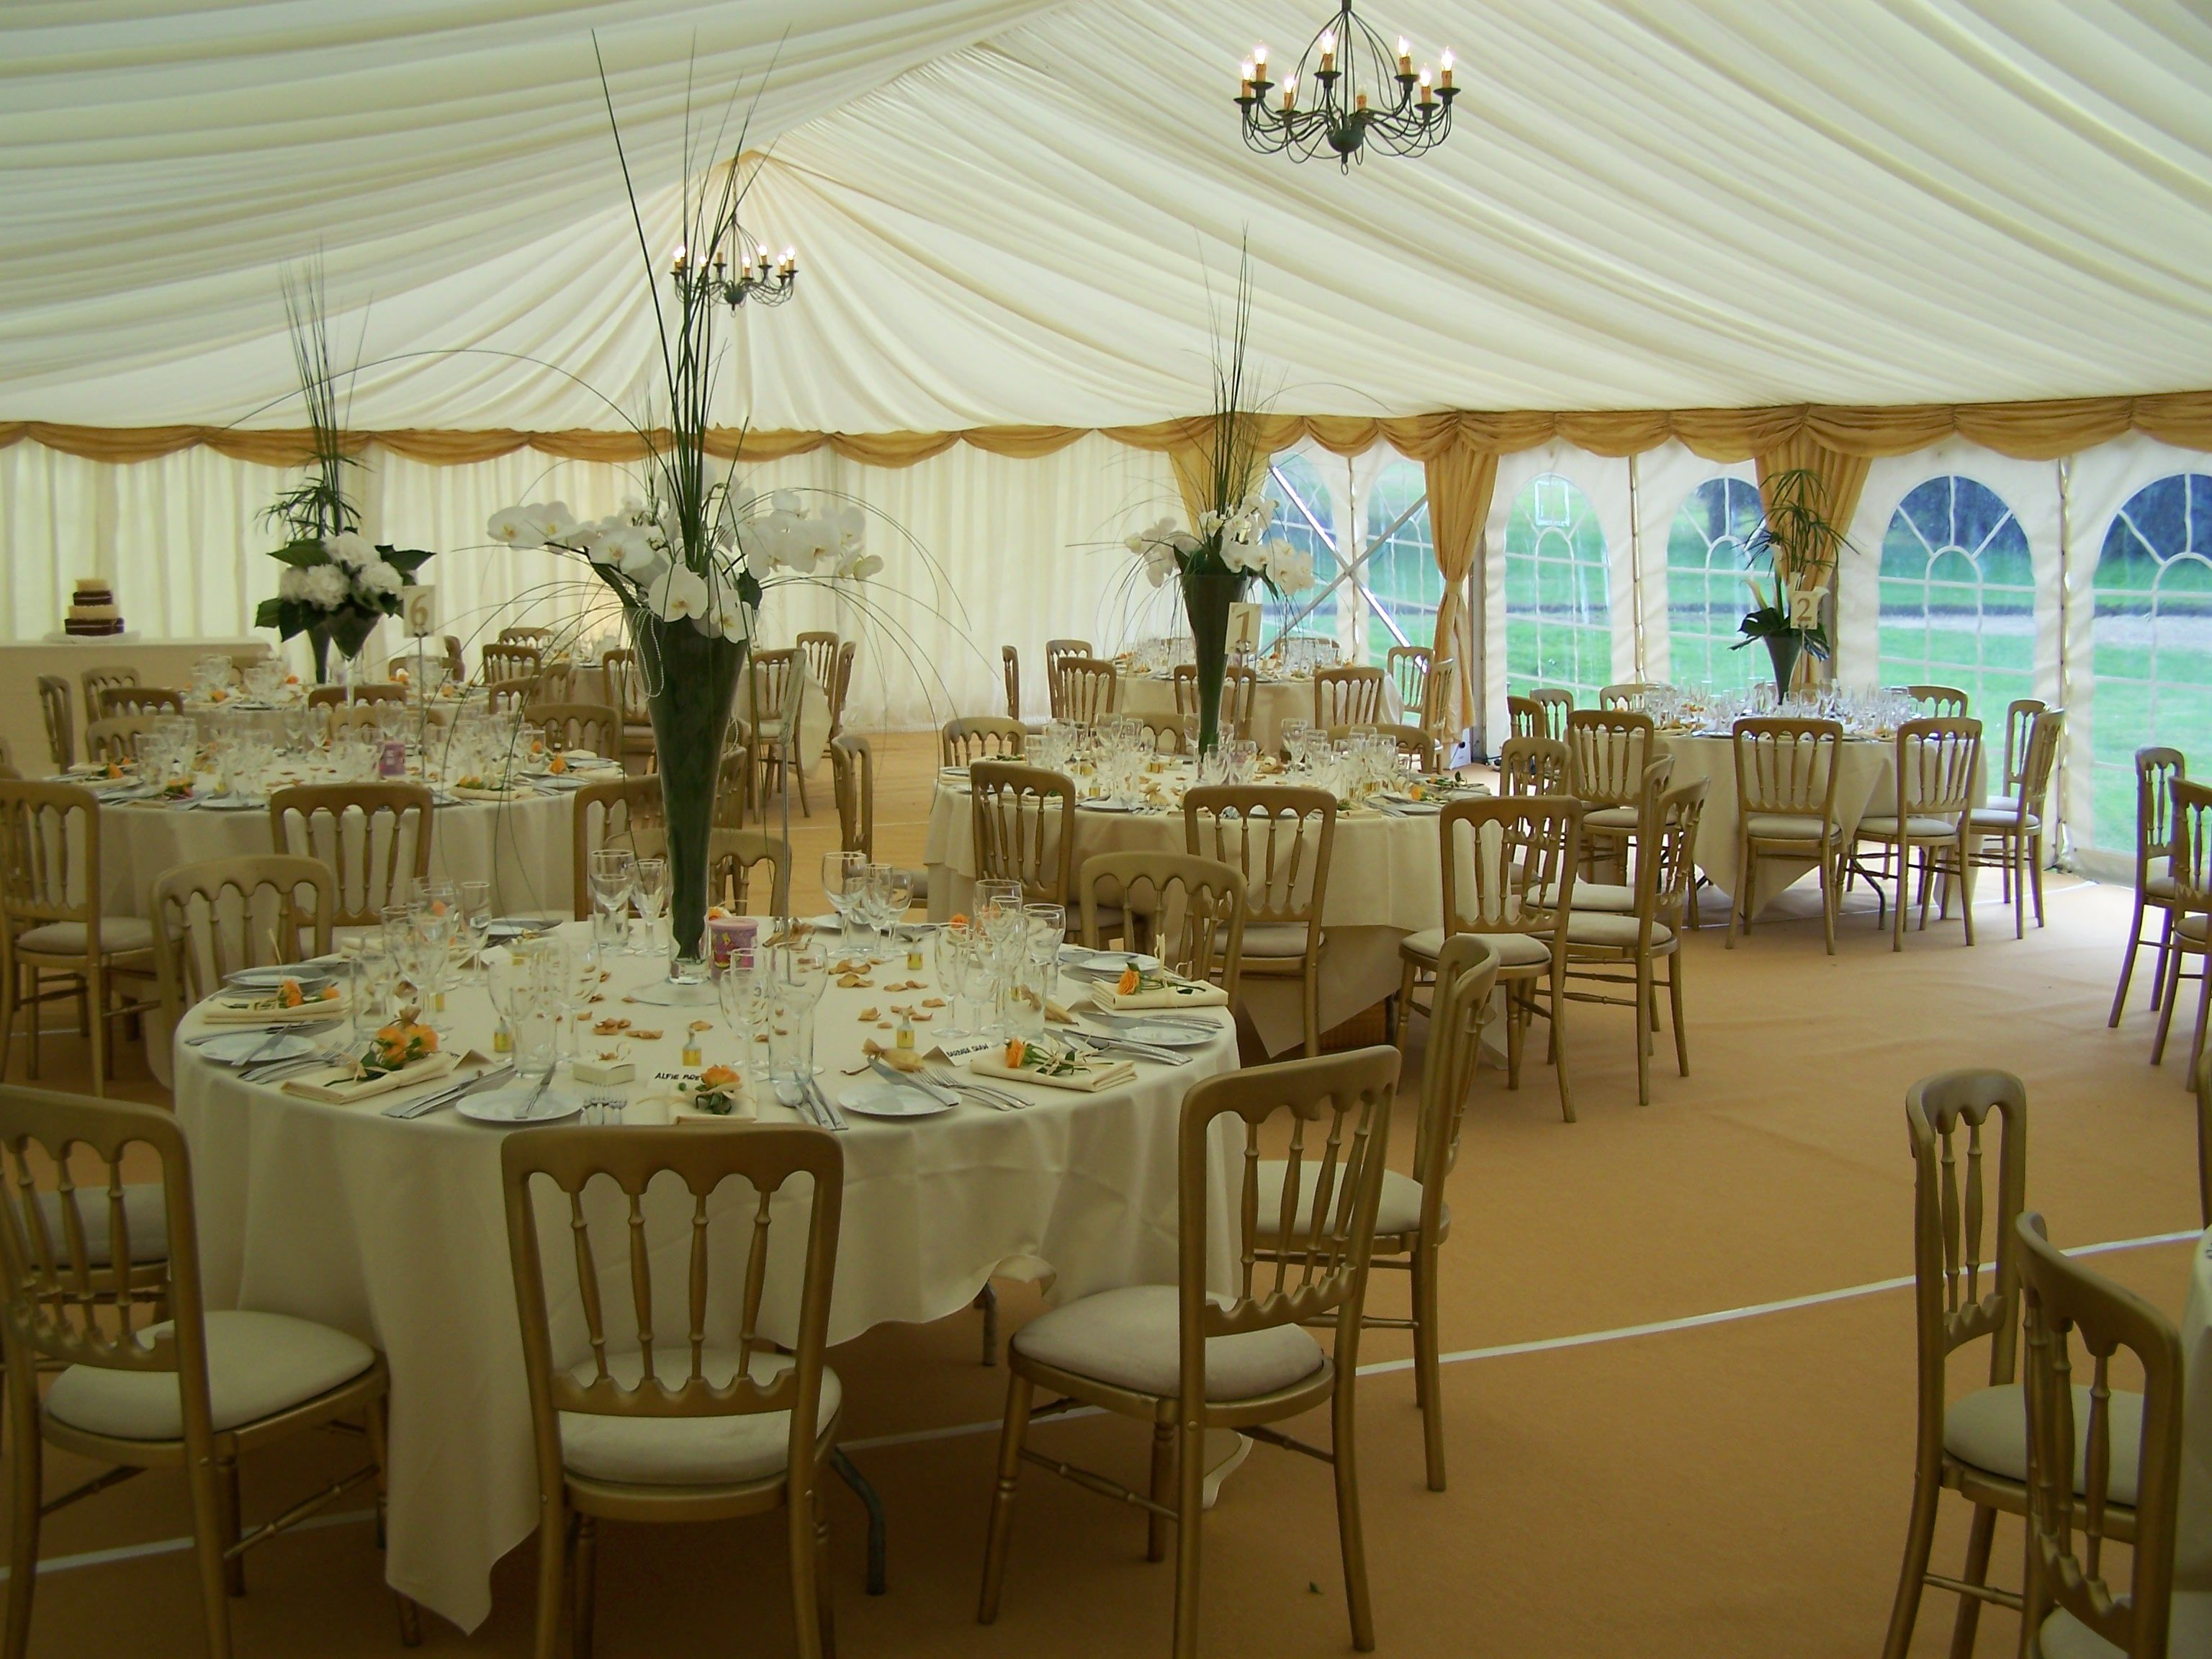 Gold Banquet Chairs With Ivory Seat Pads